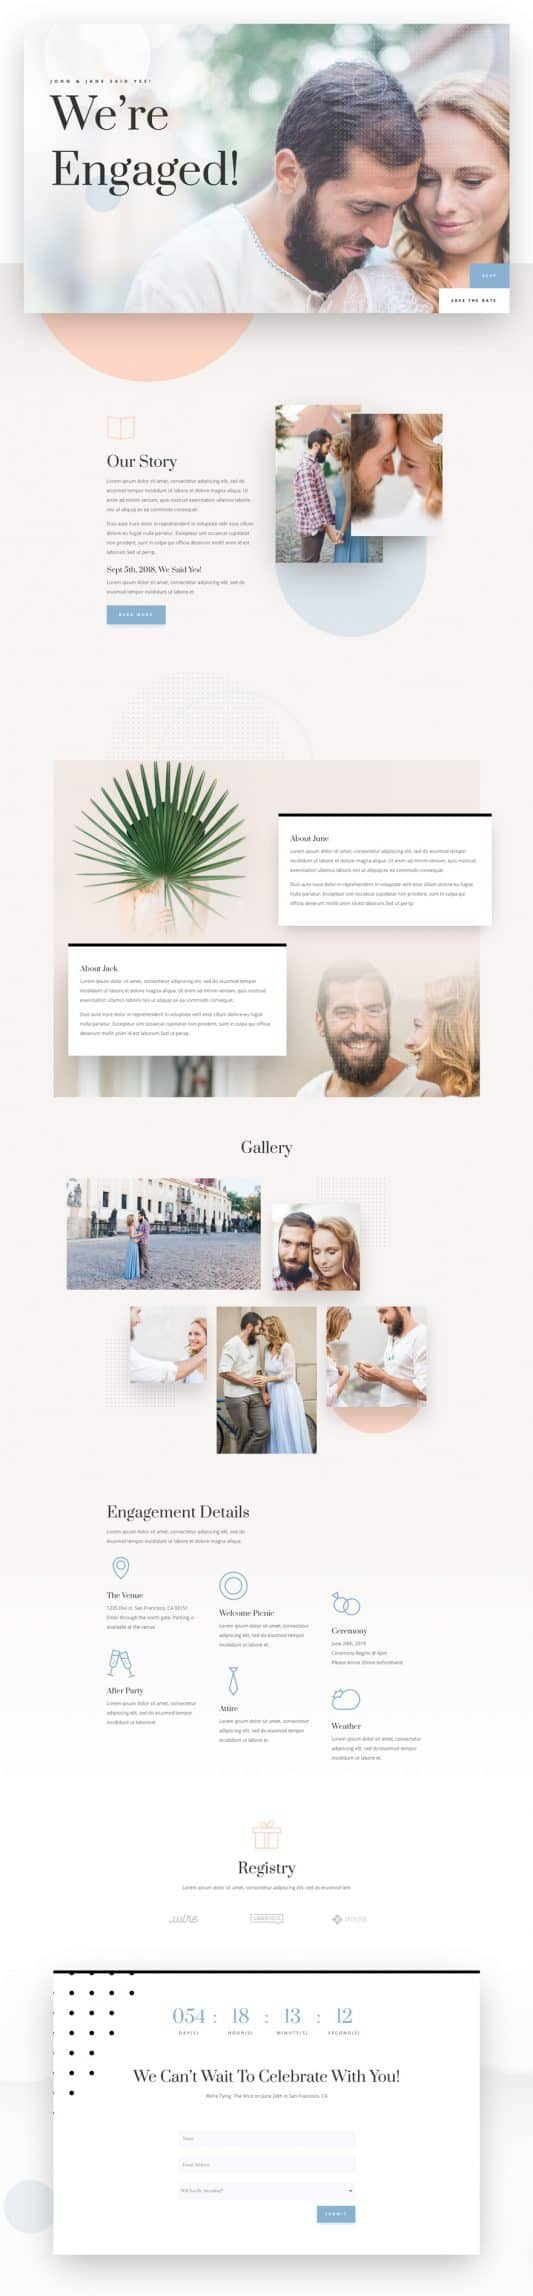 Wedding Engagement Web Design 6